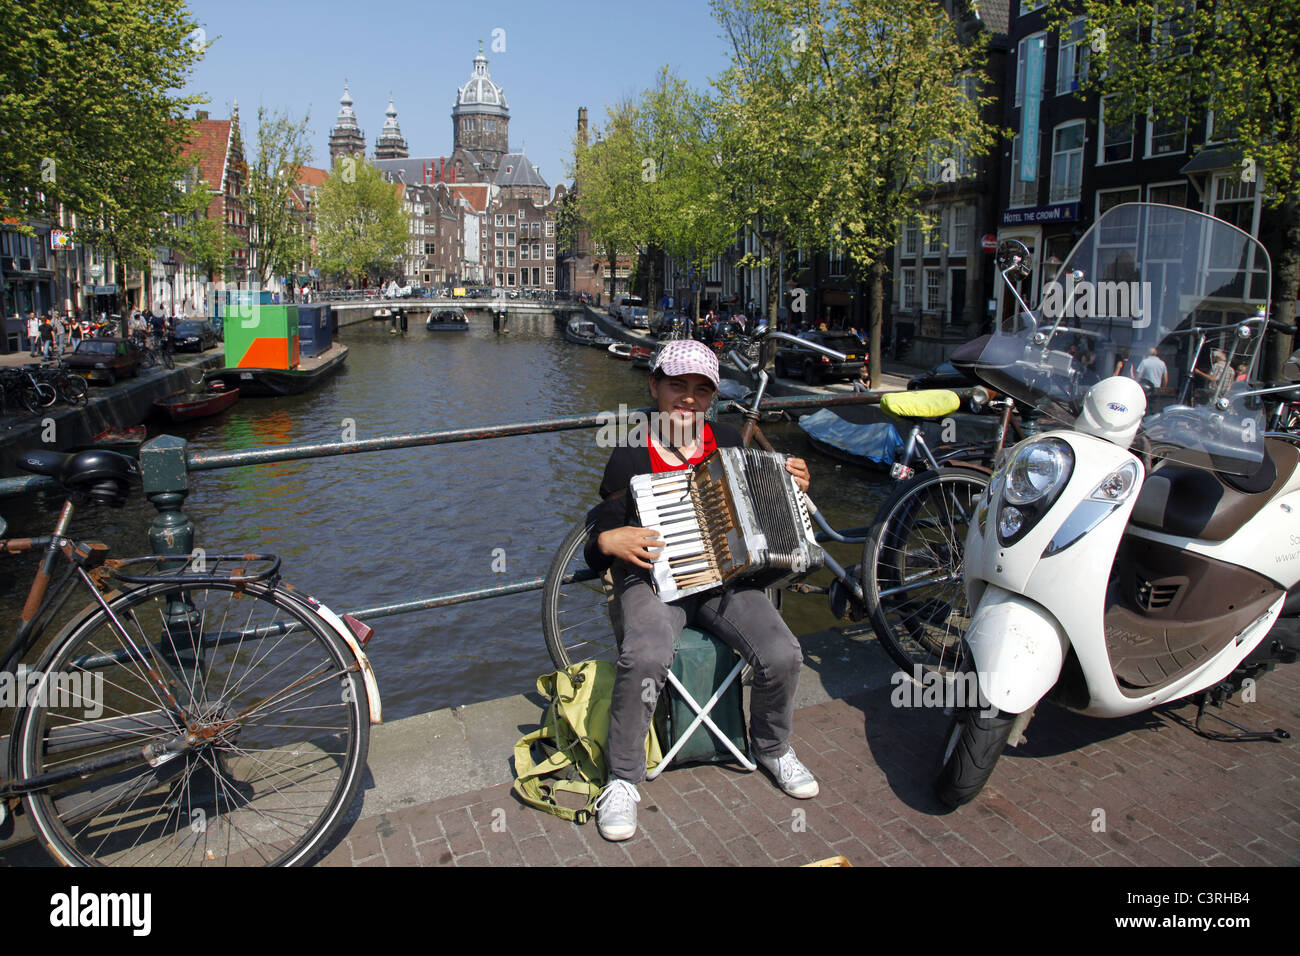 ACCORDION PLAYER & ST. NICHOLAS CATHEDRAL FROM LIESDELSLUIS BRIDGE AMSTERDAM 23 April 2011 - Stock Image